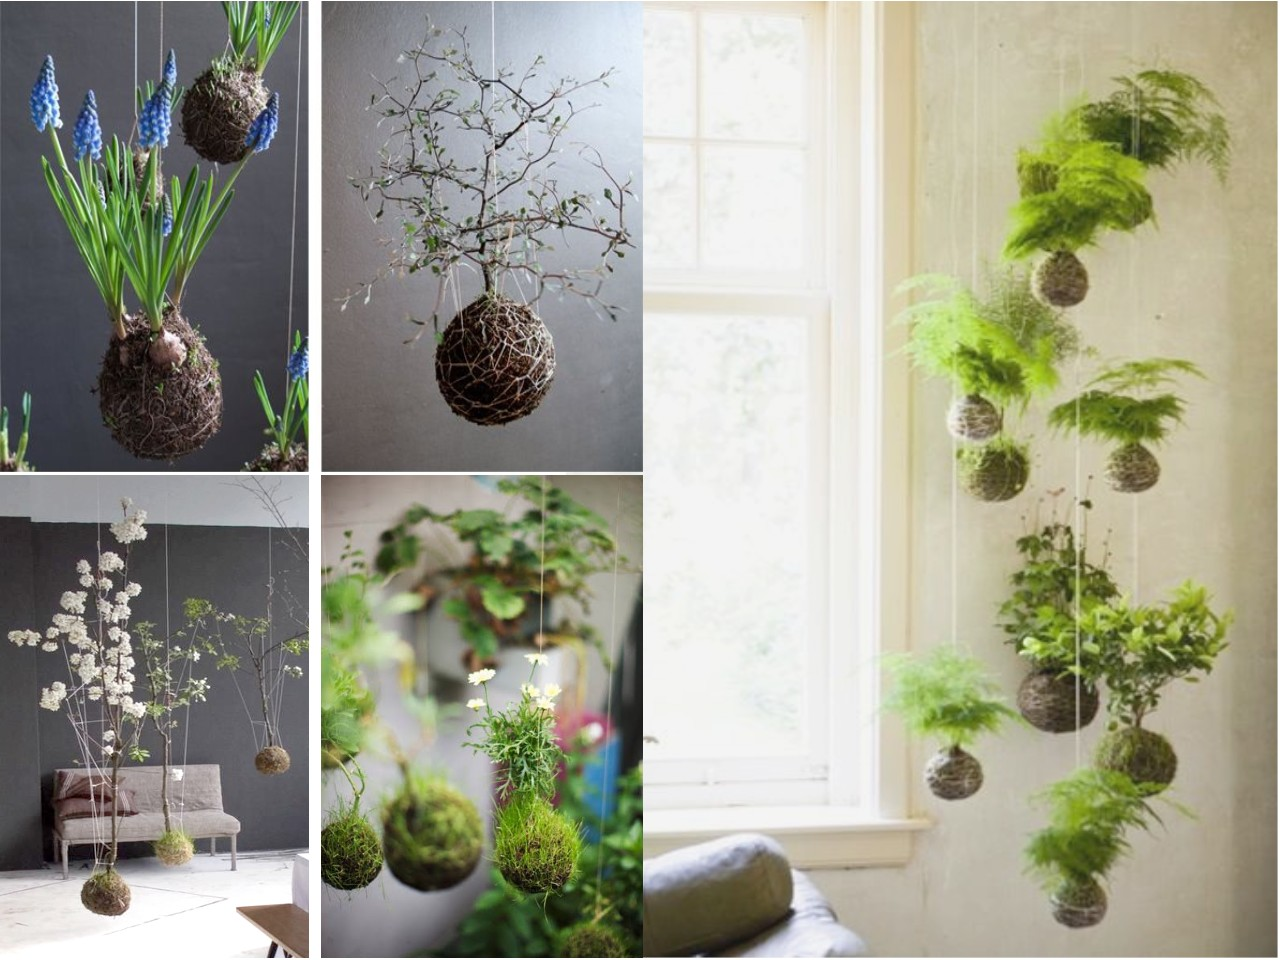 10 ideas de decoraci n con plantas colgantes for Decoracion con plantas crasas